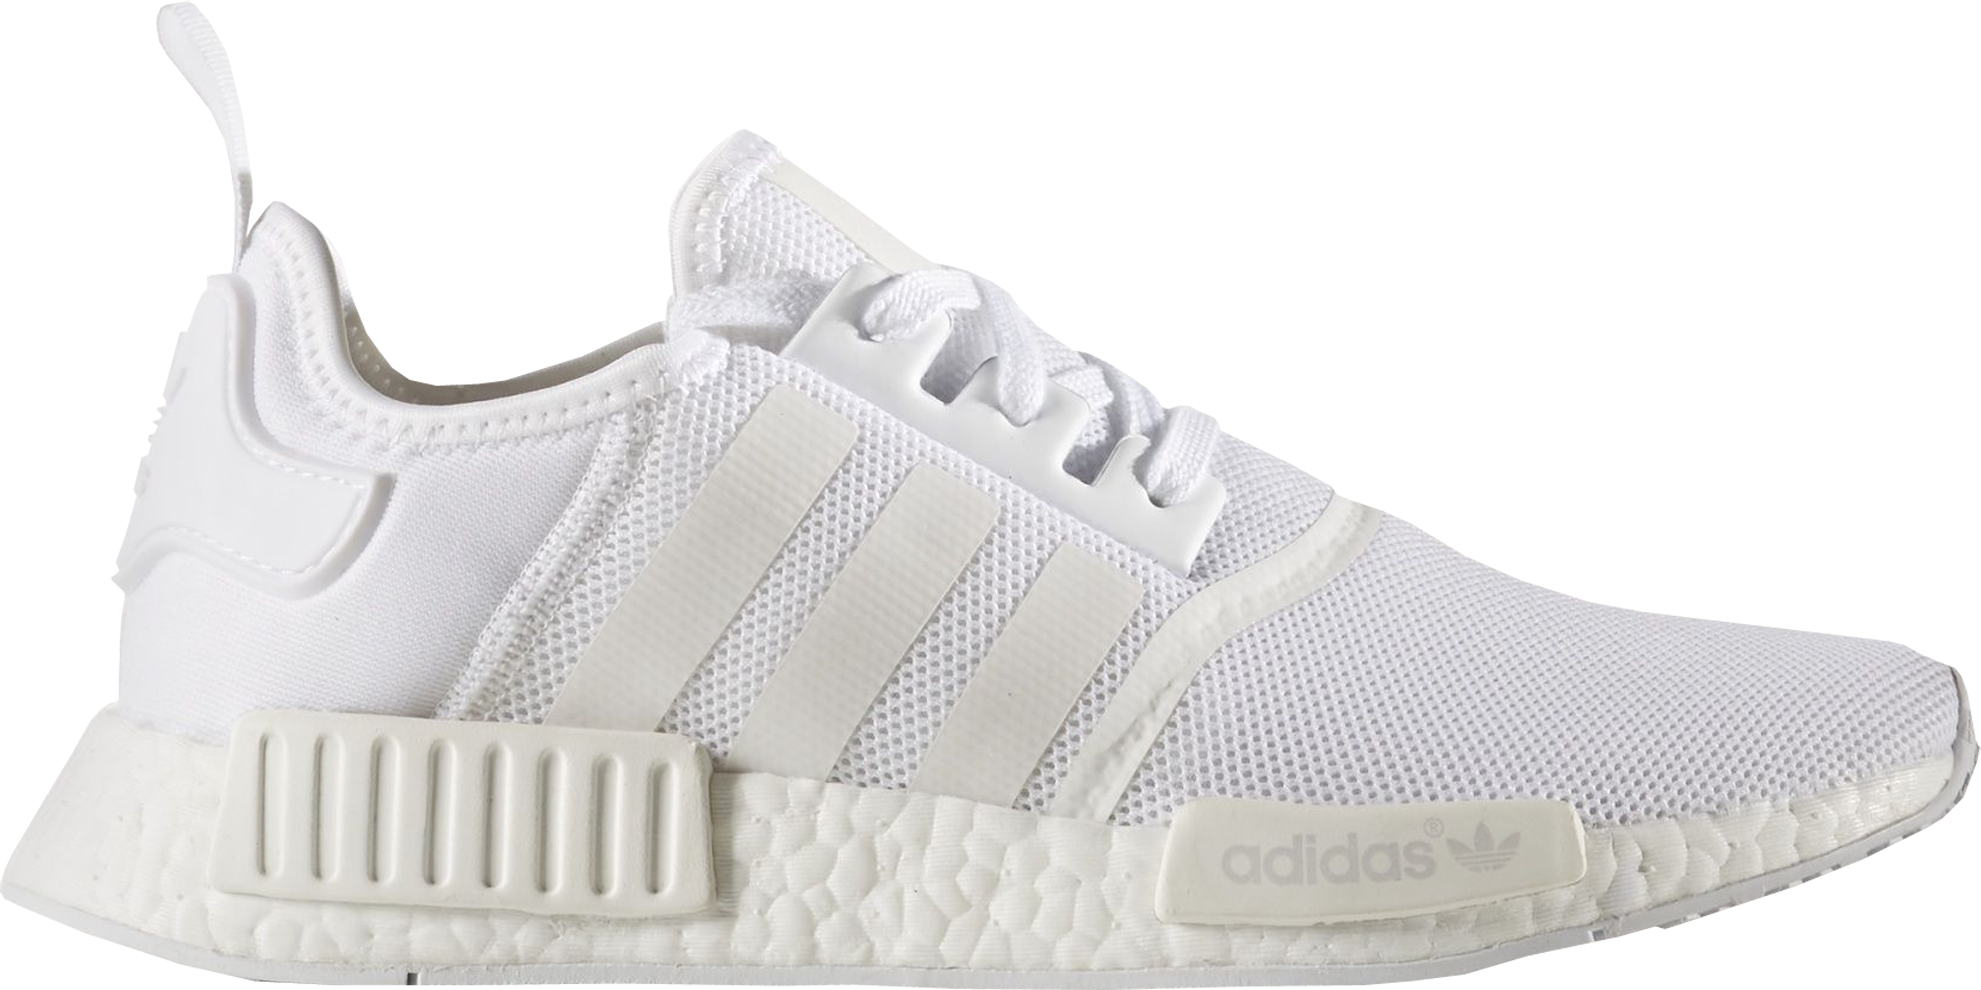 Adidas NMD R1 BB2886 Grey/White Glitch Men's